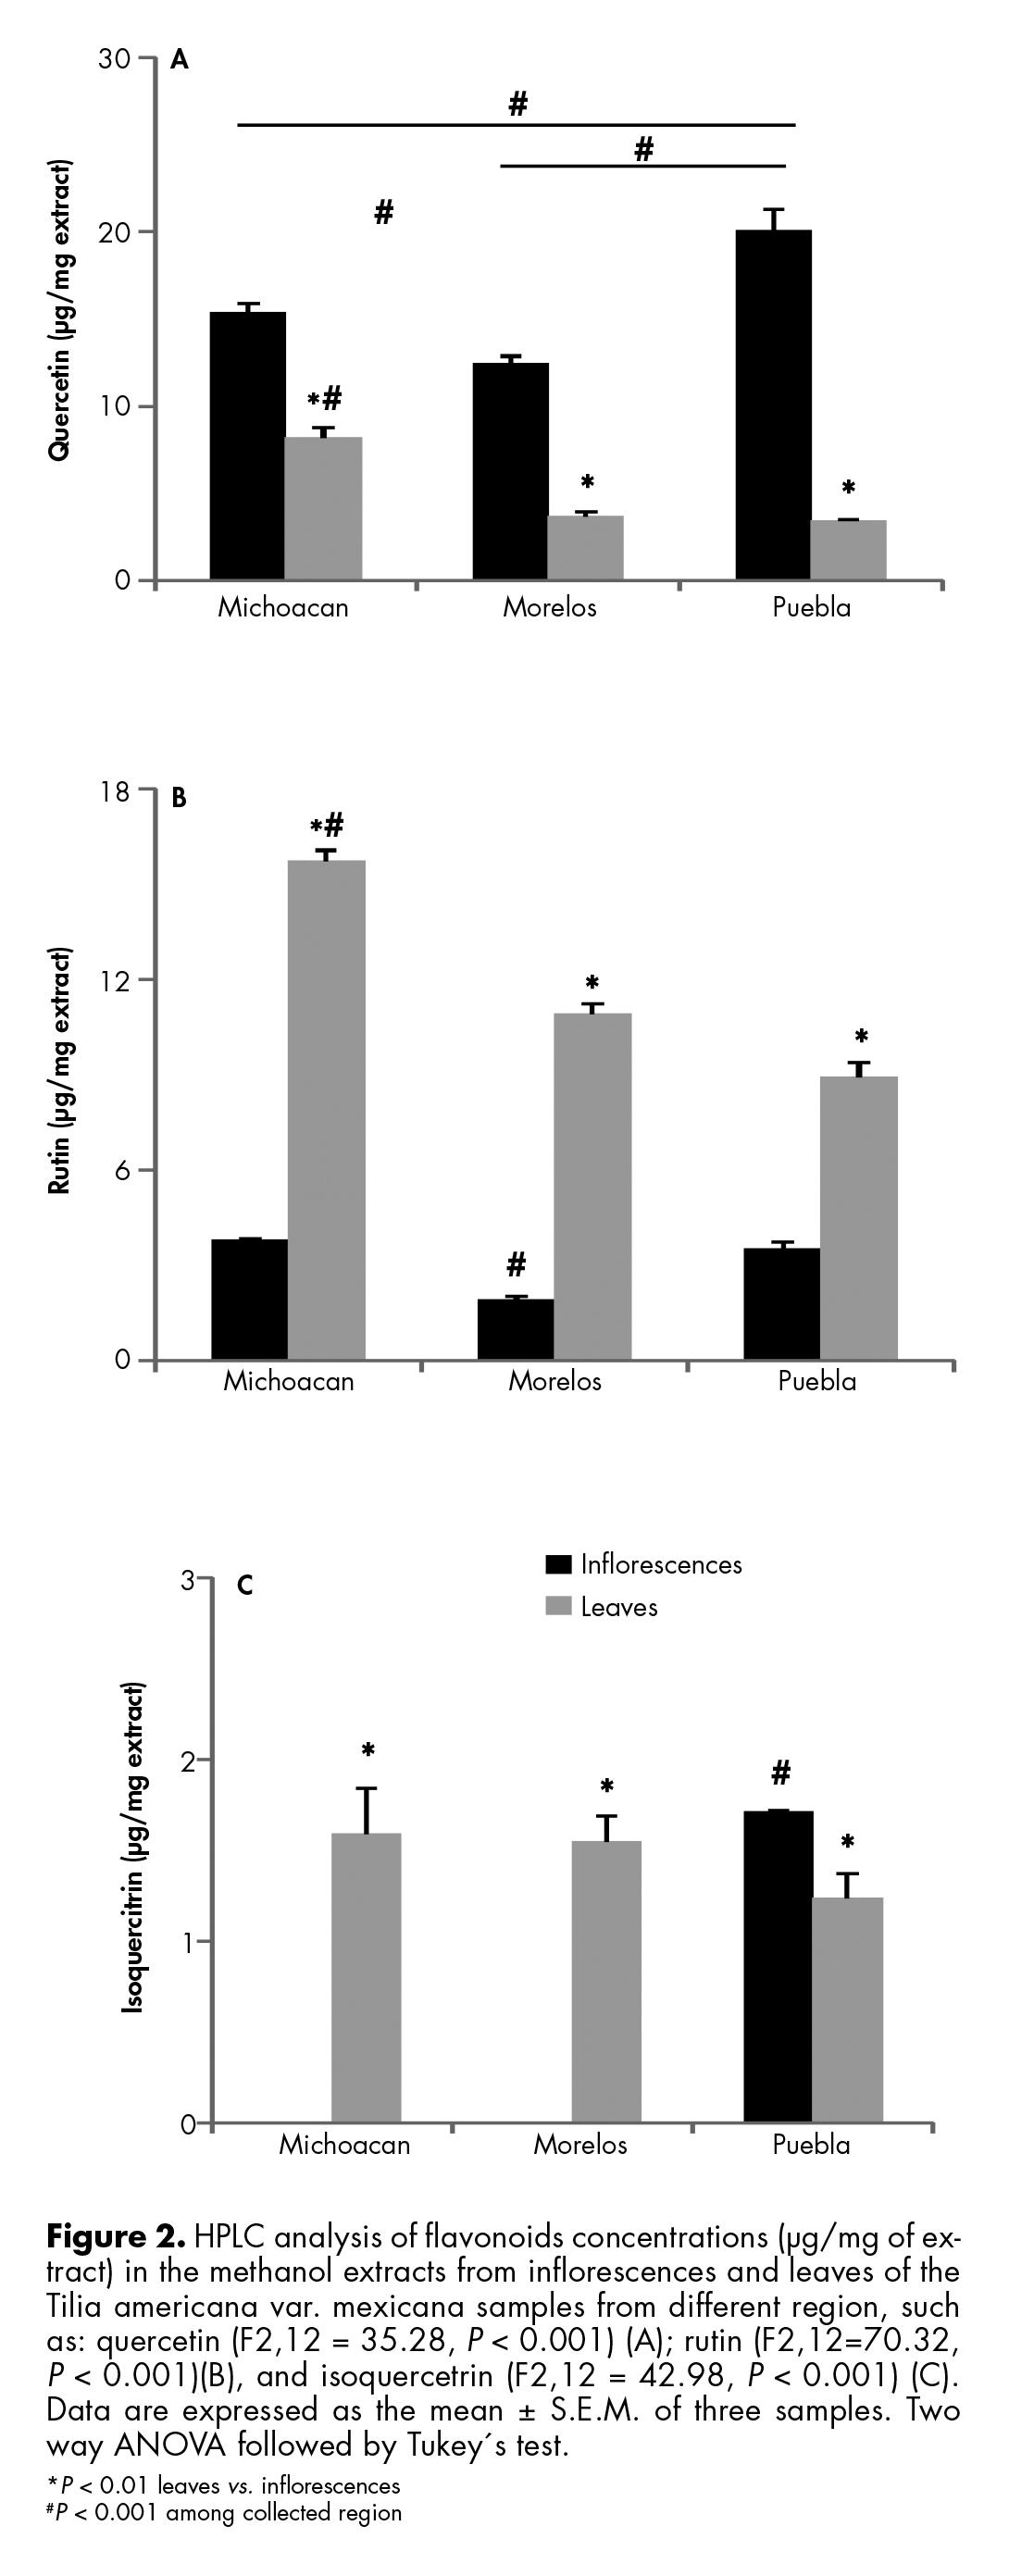 HPLC analysis of flavonoids concentrations (µg/mg of extract) in the methanol extracts from inflorescences and leaves of the Tilia americana var. mexicana.